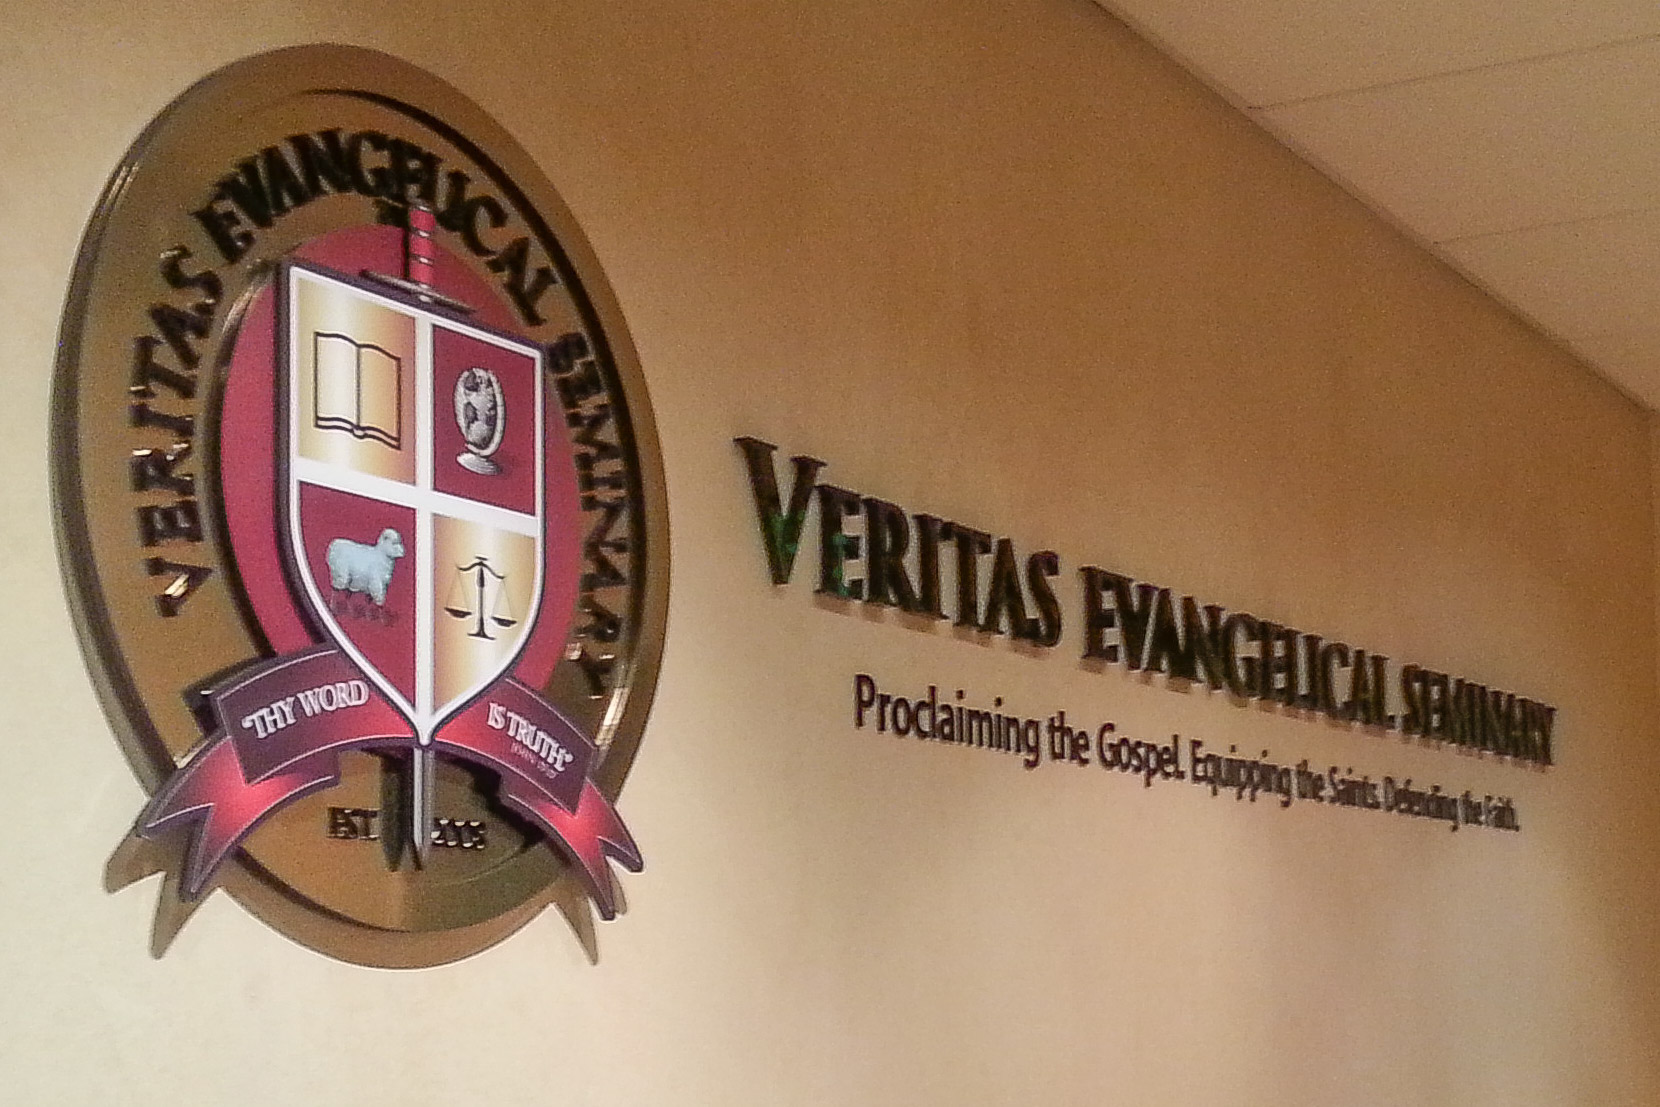 Veritas Evangelical Seminary reception logo sign